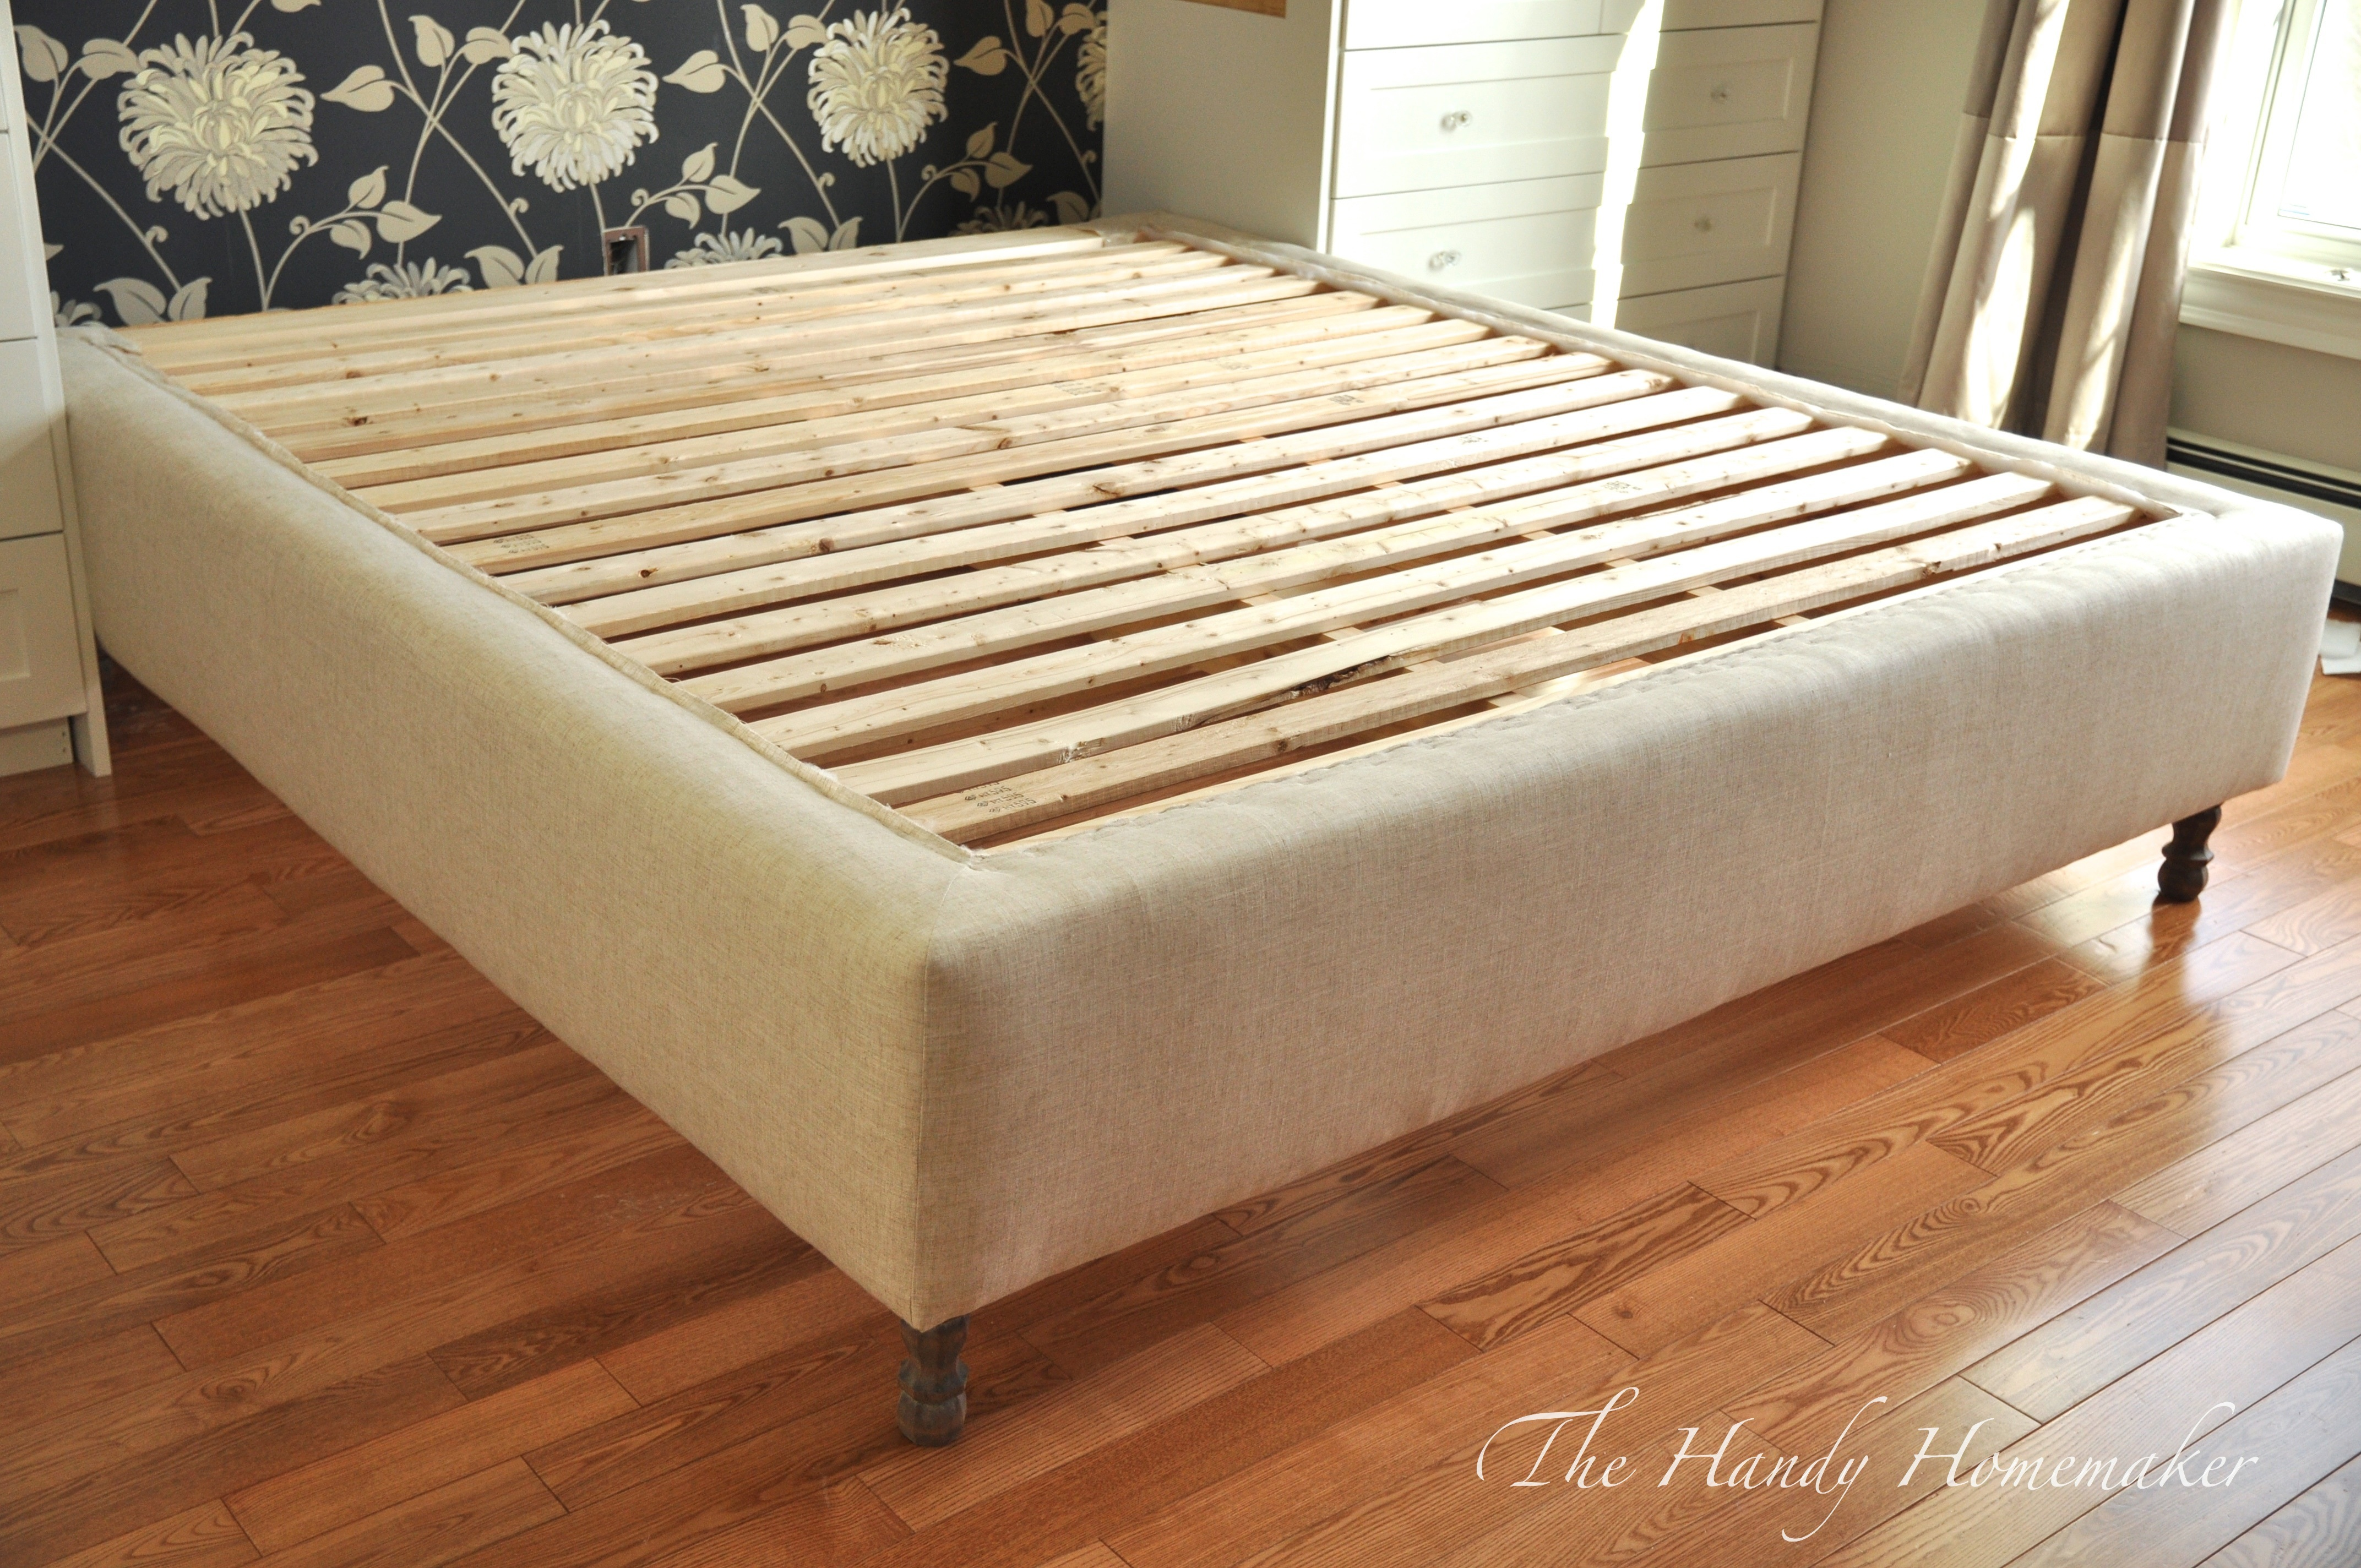 Upholstered Bed Frame DIY Part 1 – THE HANDY HOMEMAKER